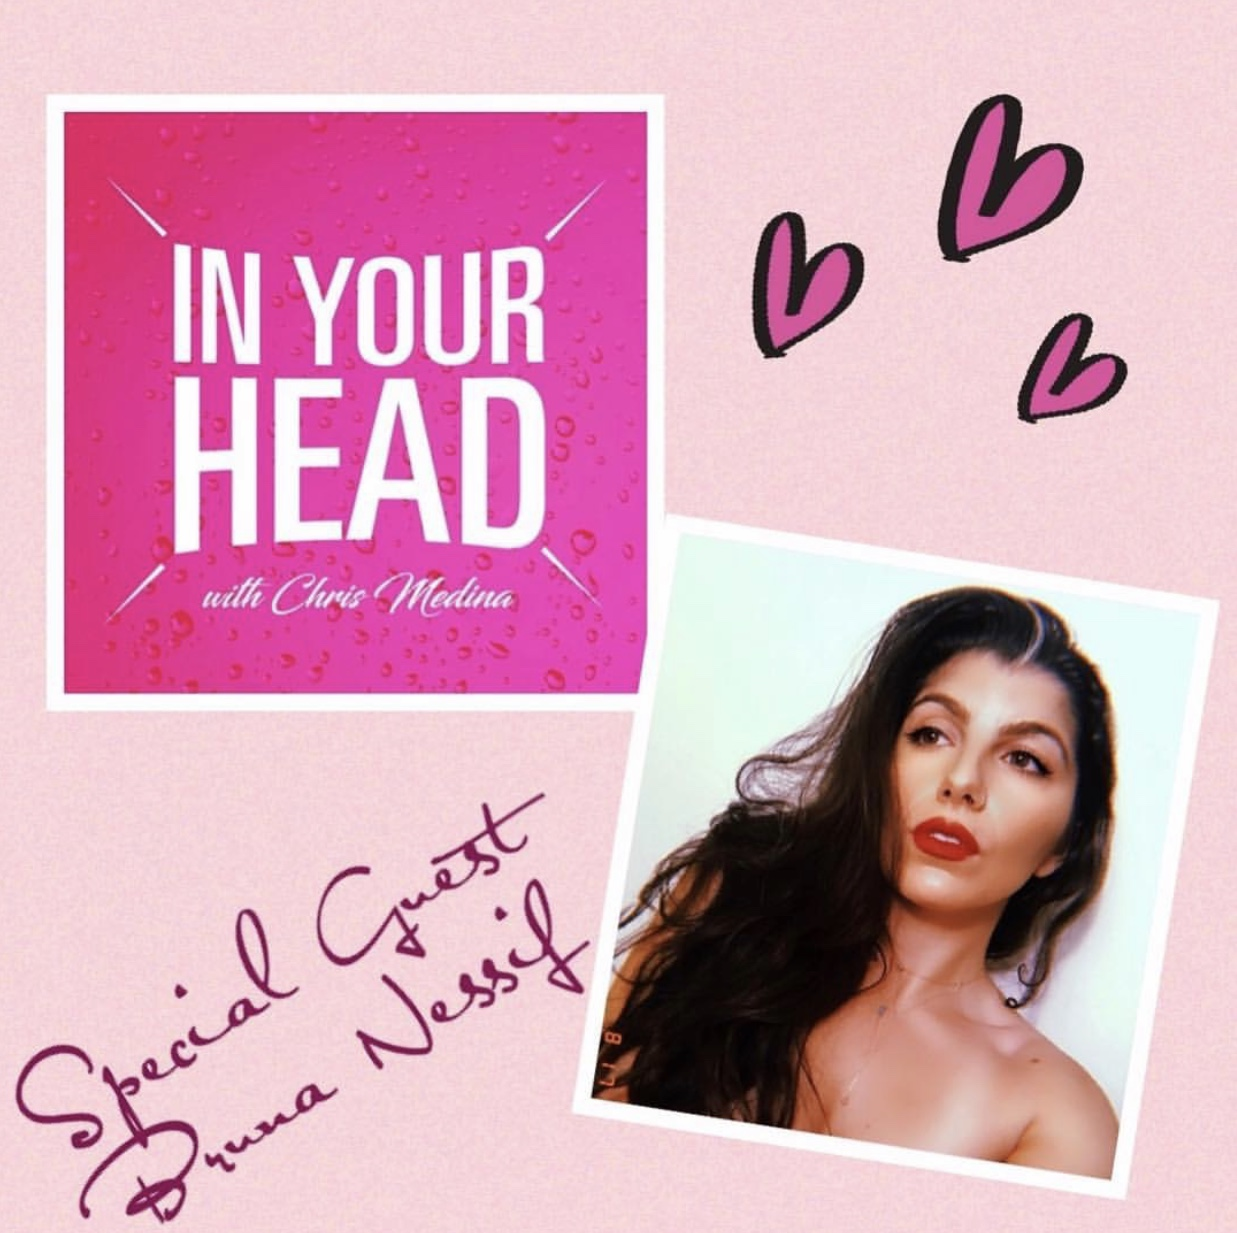 in-your-head-chris-medina-bruna-nessif-podcast.jpg